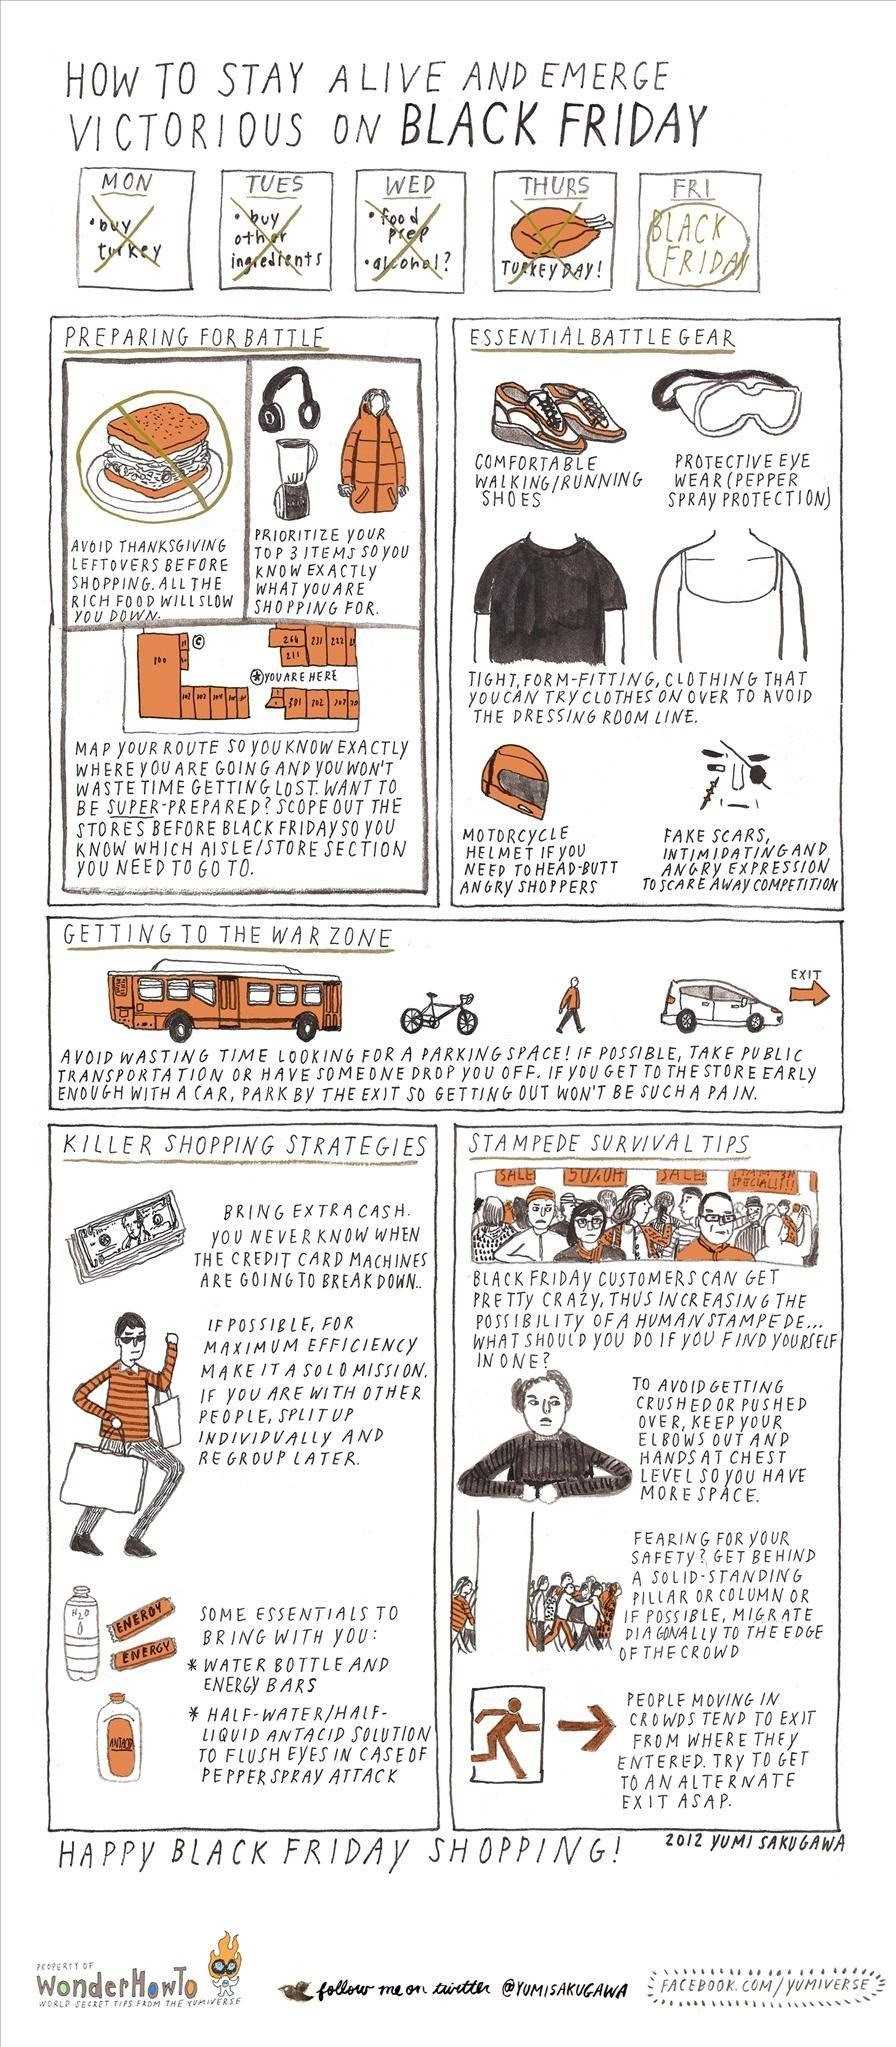 How to Stay Alive & Emerge Victorious on Black Friday